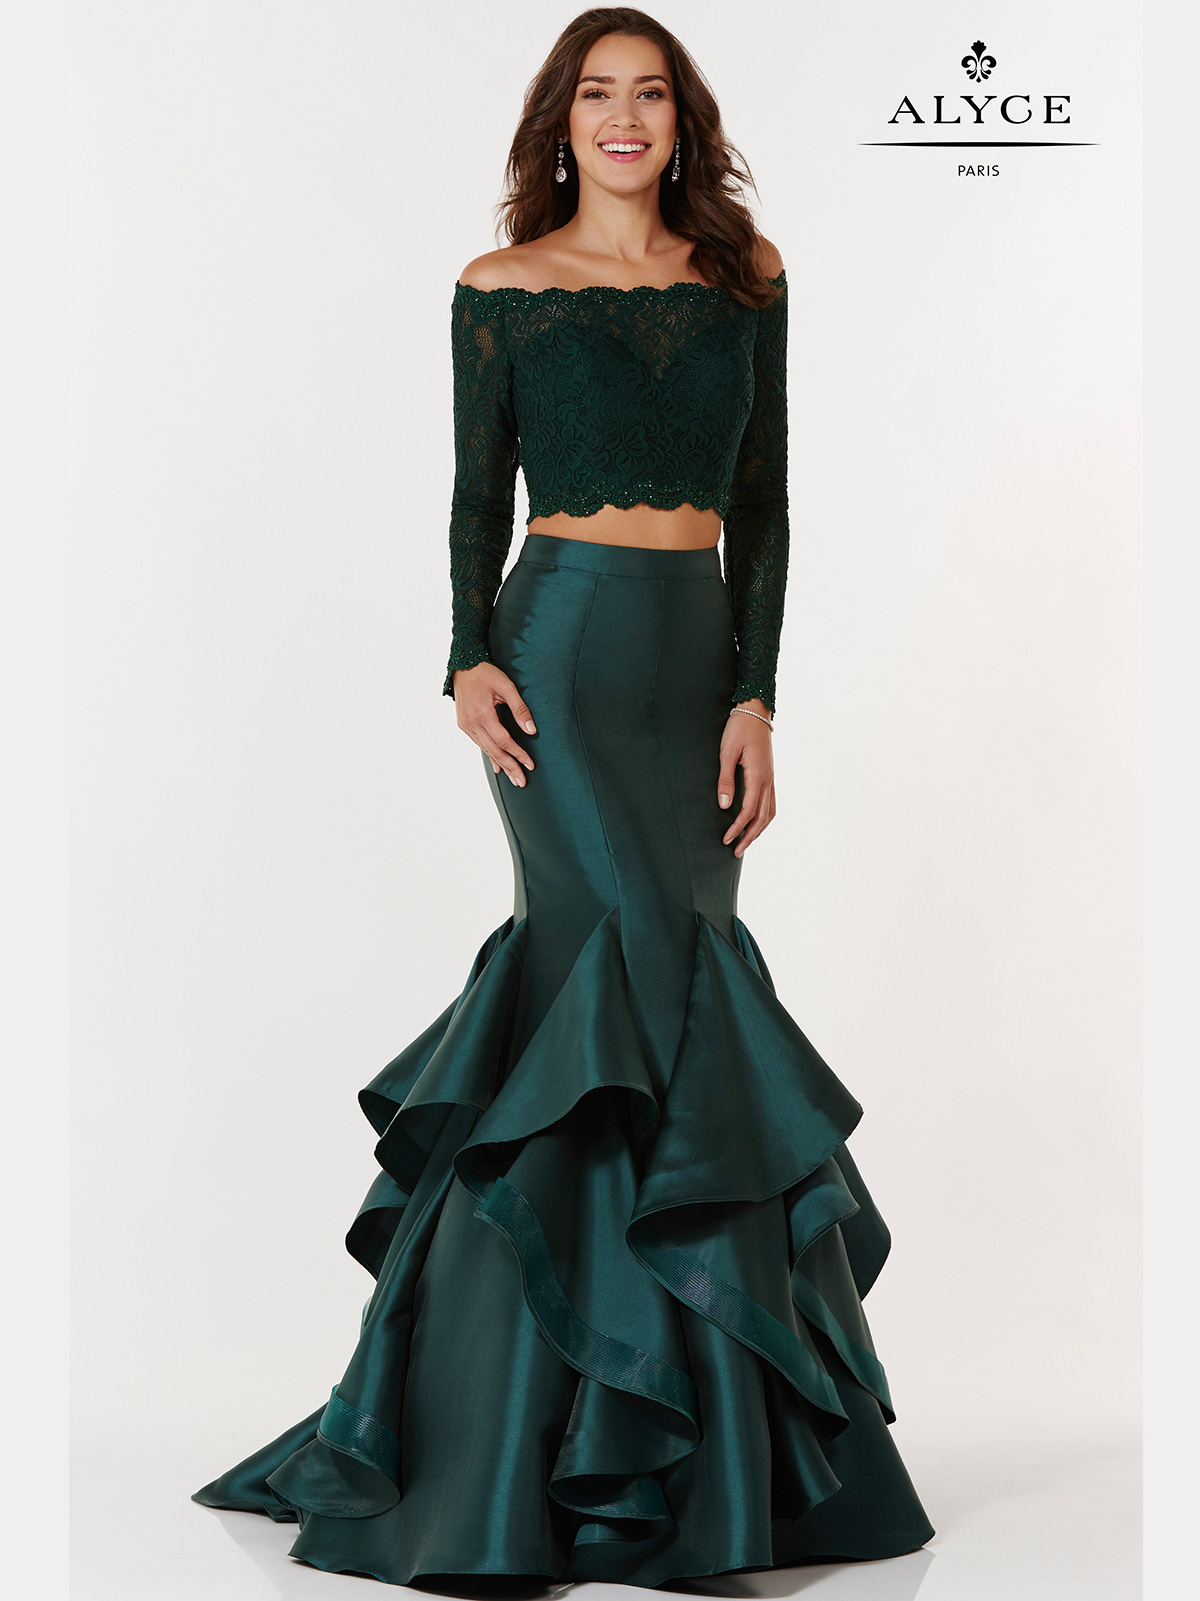 Contemporary Prom Dress Shops In Greenville Sc Images - Colorful ...